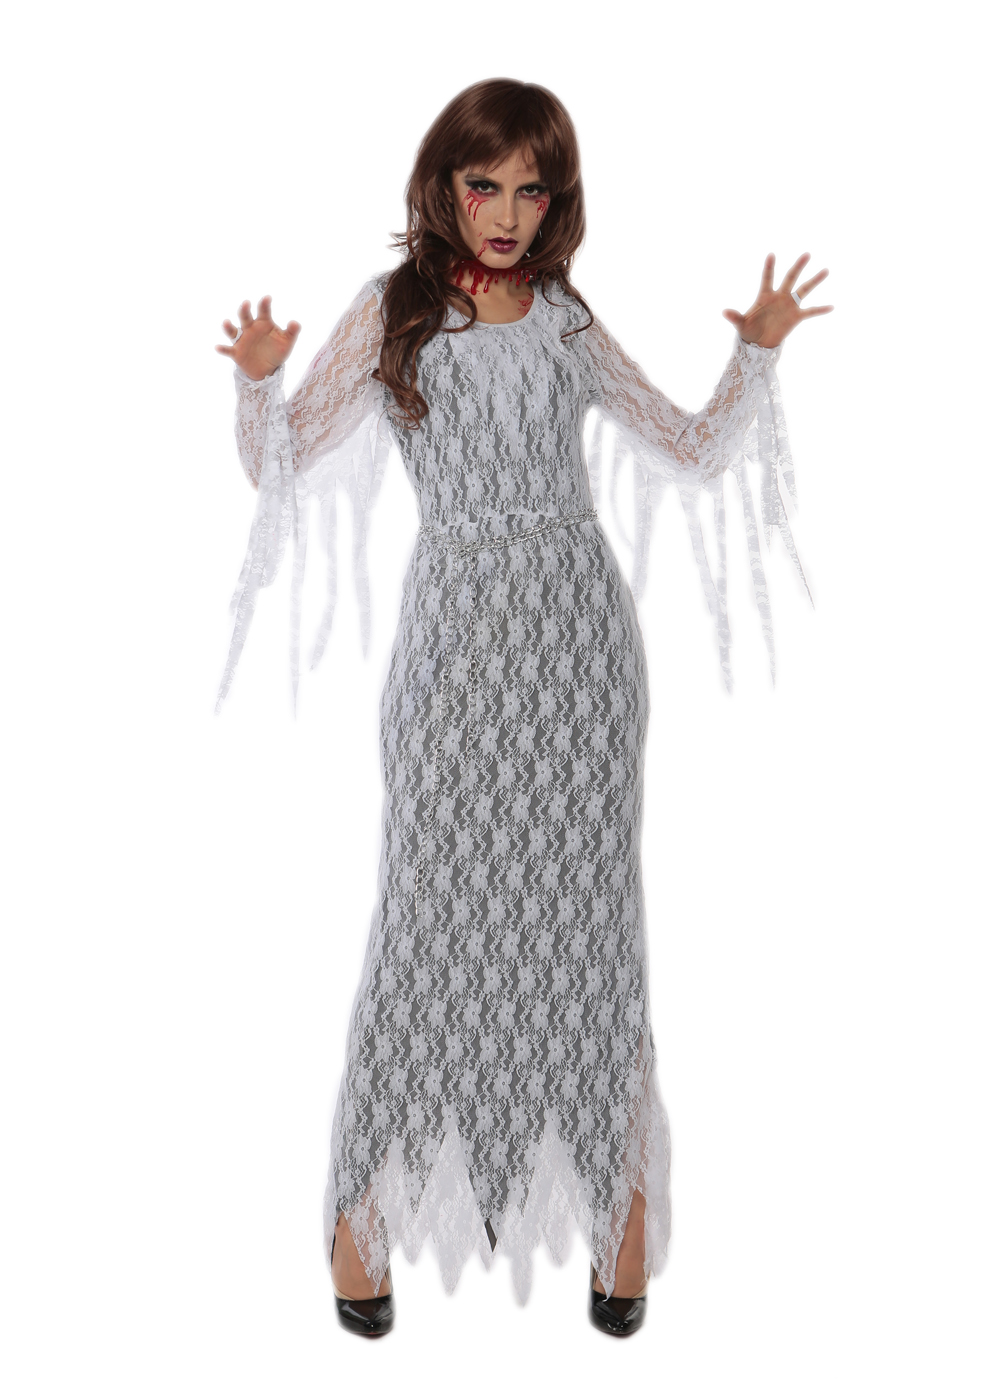 F1702 Horror zombie costume halloween blood ghost costume for women